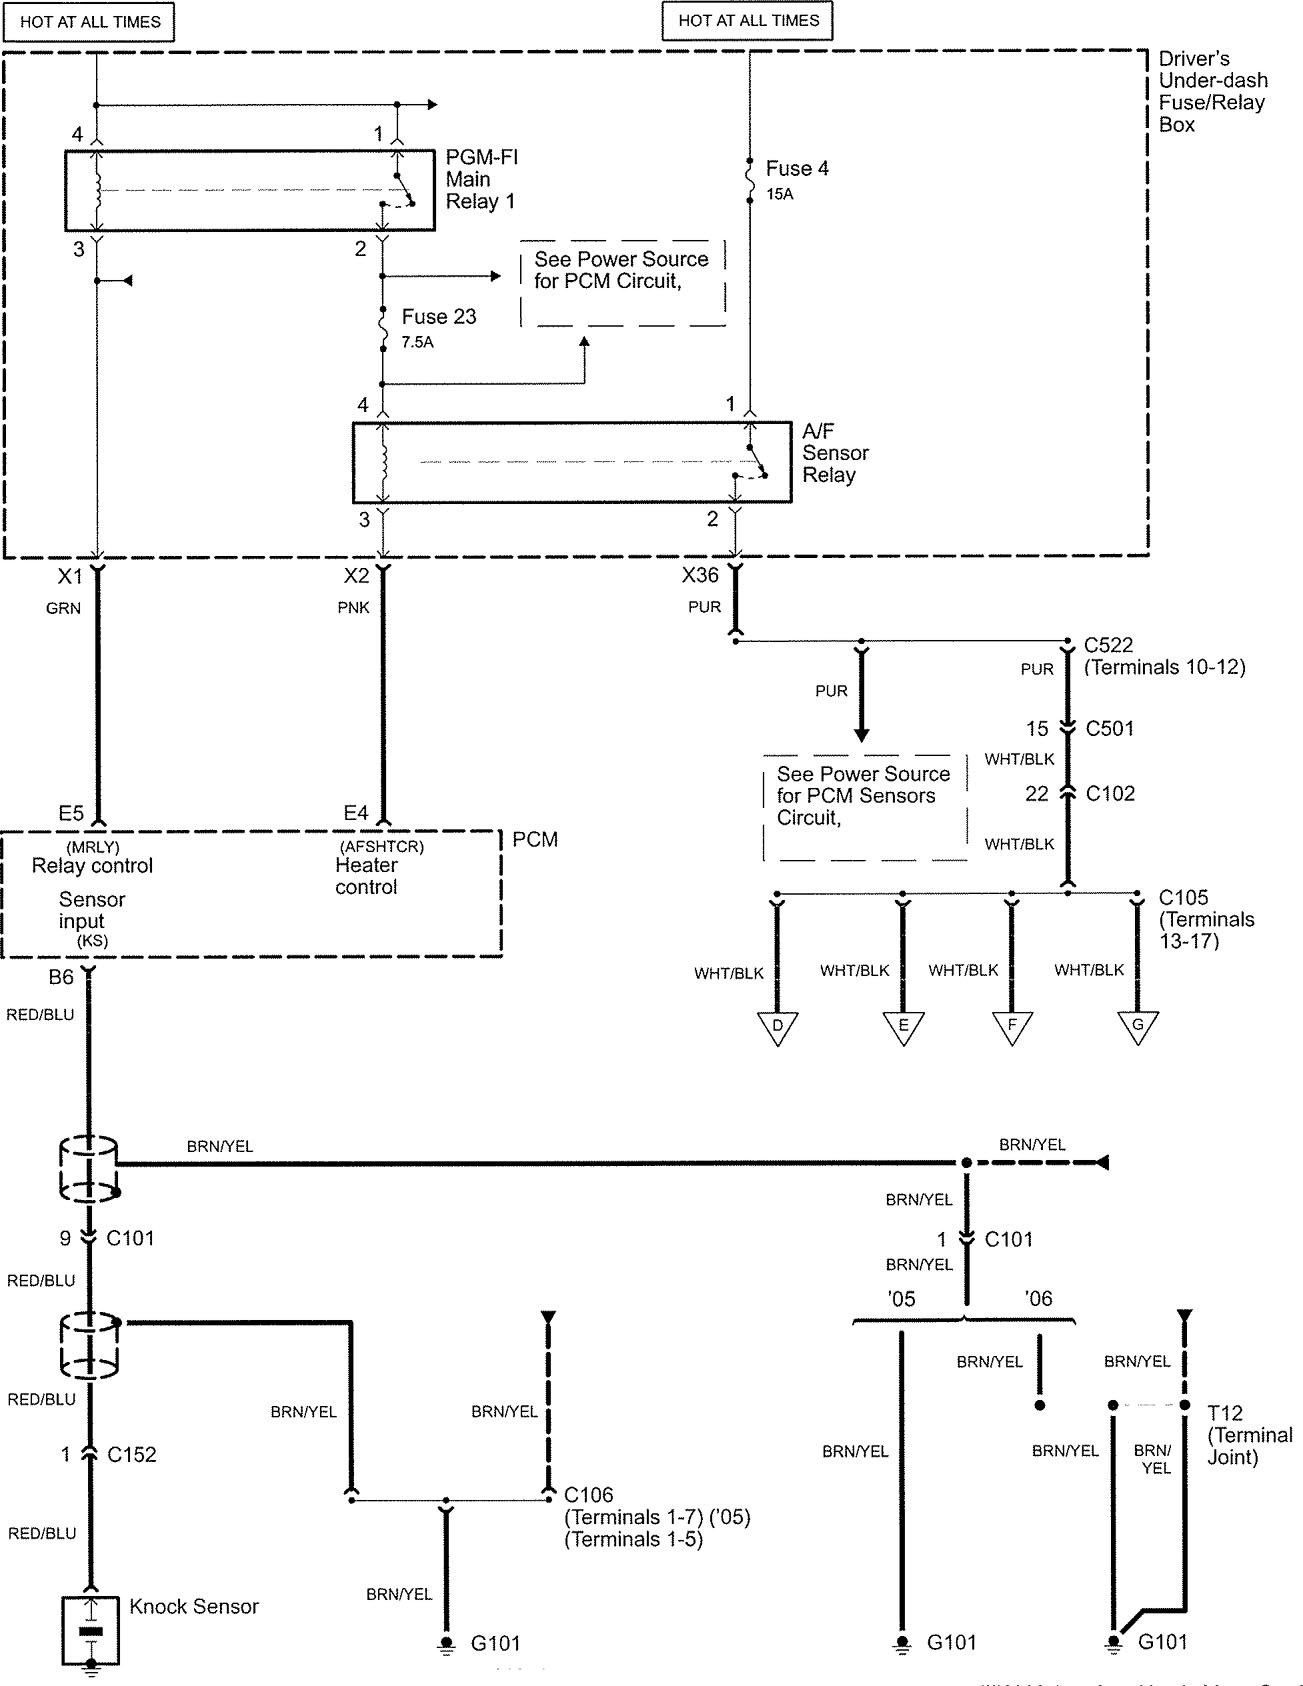 acura rl wiring diagram fuel controls v2 4 2005 cessna 152 wiring diagram wiring diagrams Basic Electrical Wiring Diagrams at gsmx.co